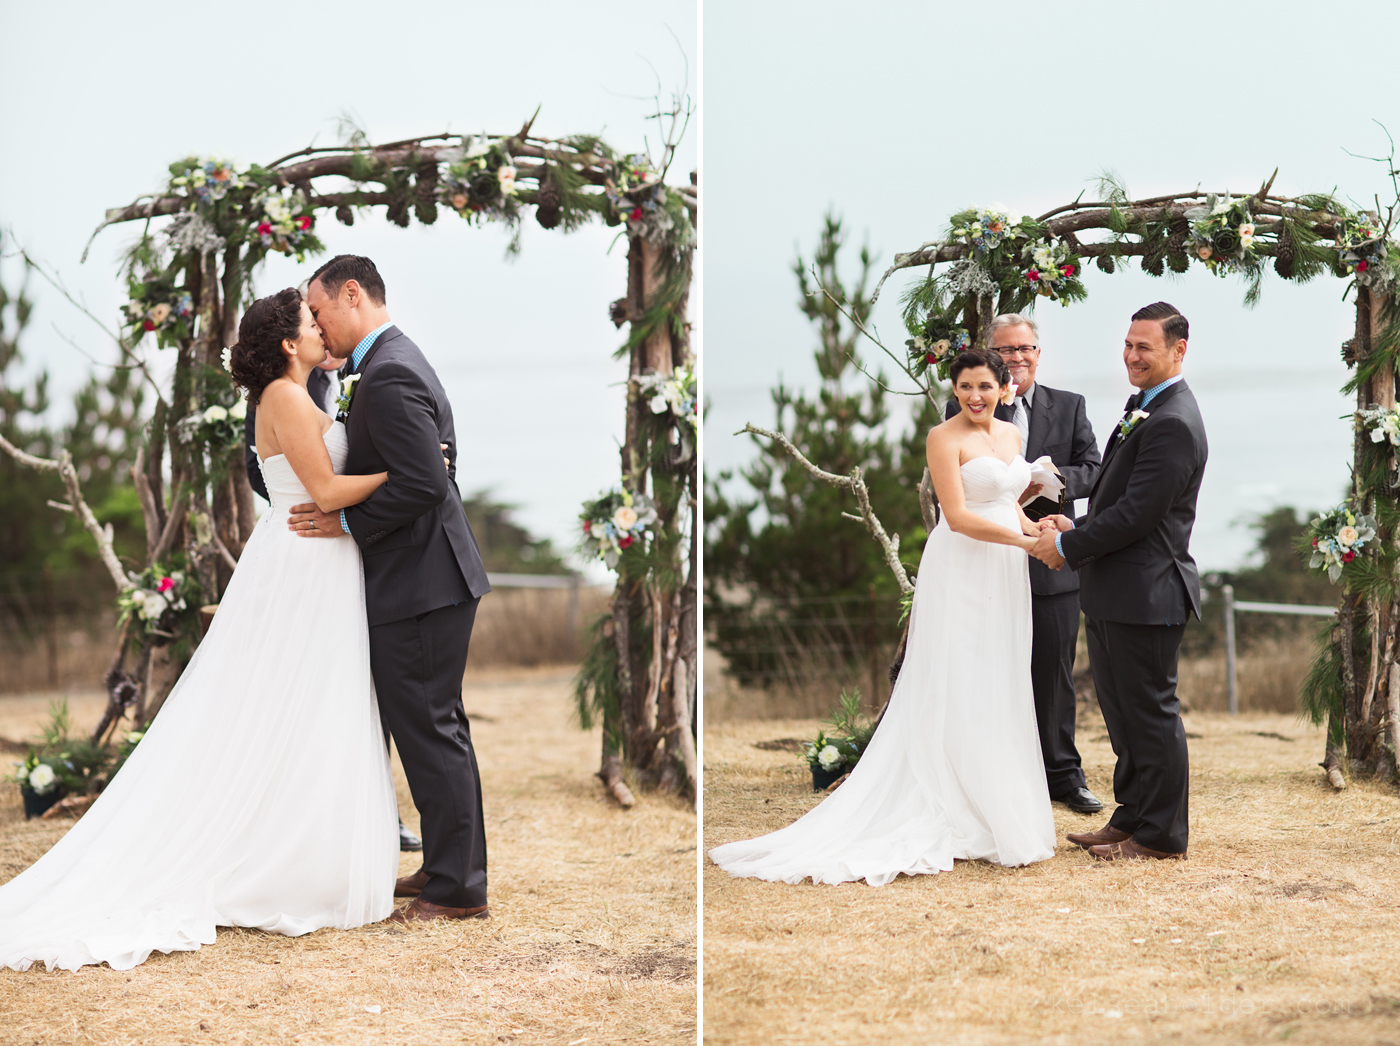 kelsea_holder_eco_outdoor_california_wedding035